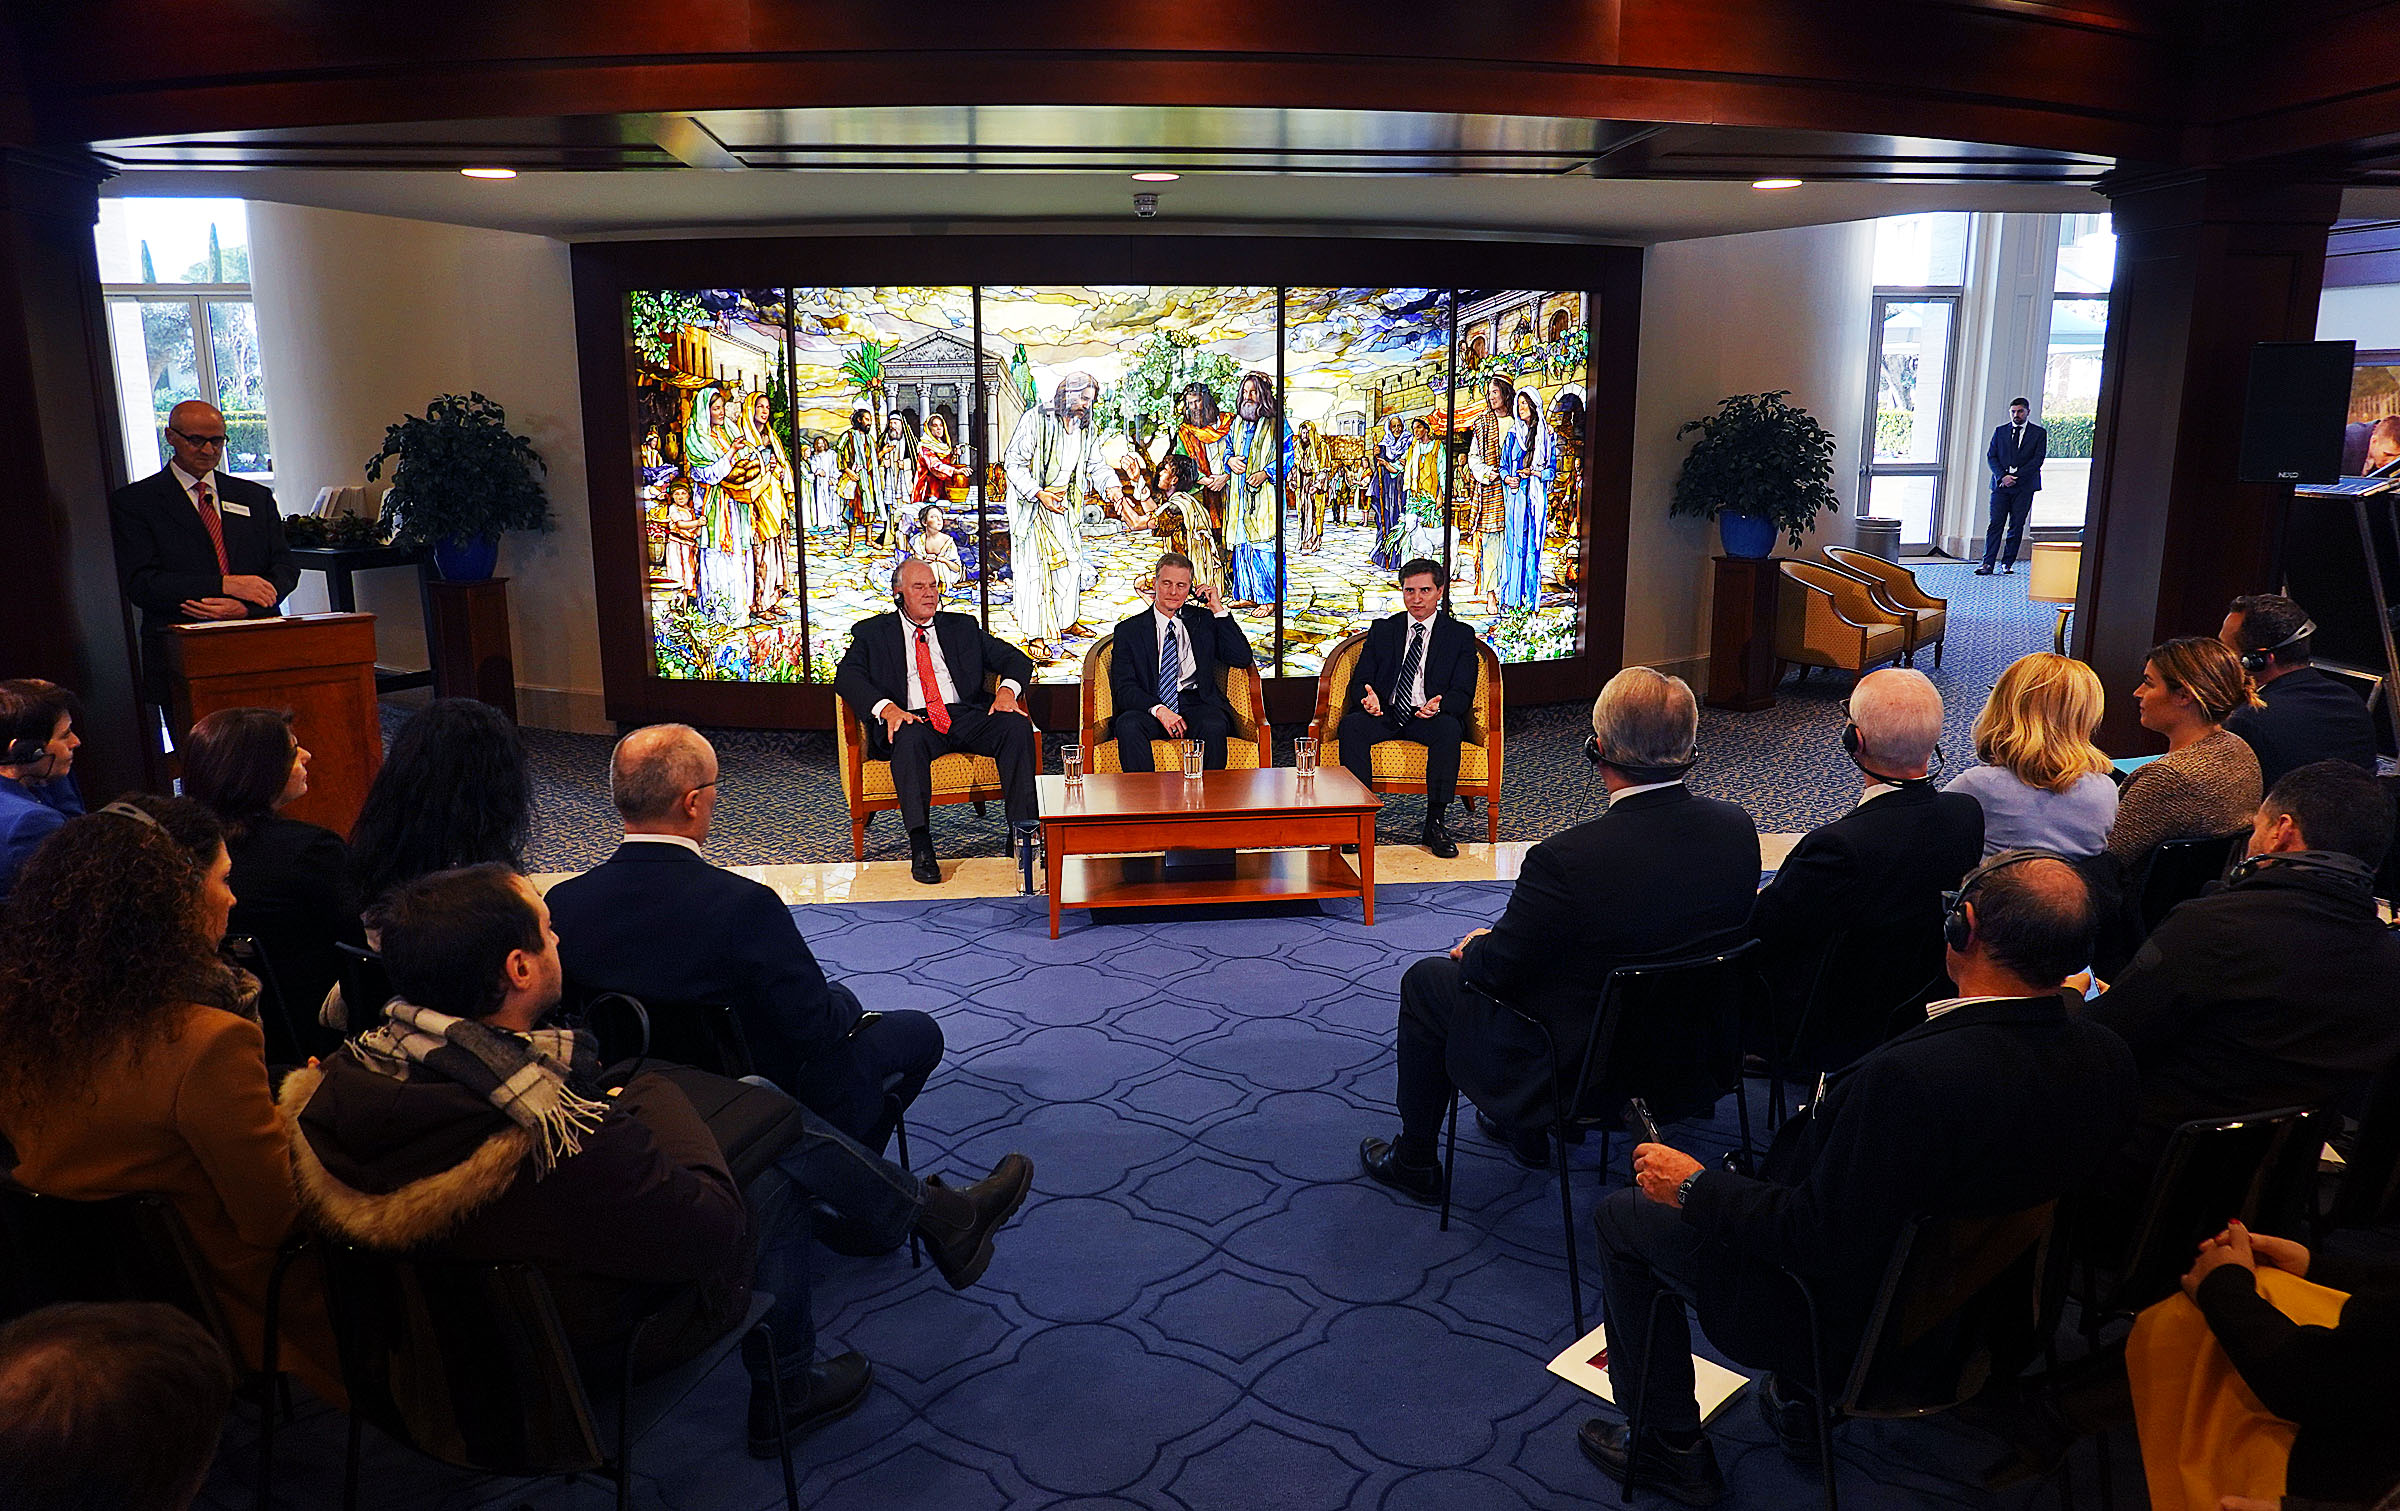 Elder Ronald A. Rasband, left, and Elder David A. Bednar of the Quorum of the Twelve Apostles, along with Elder Massimo De Feo, a General Authority Seventy, participate in a news conference in the Rome Italy Temple Visitors' Center on Monday, Jan. 14, 2019.